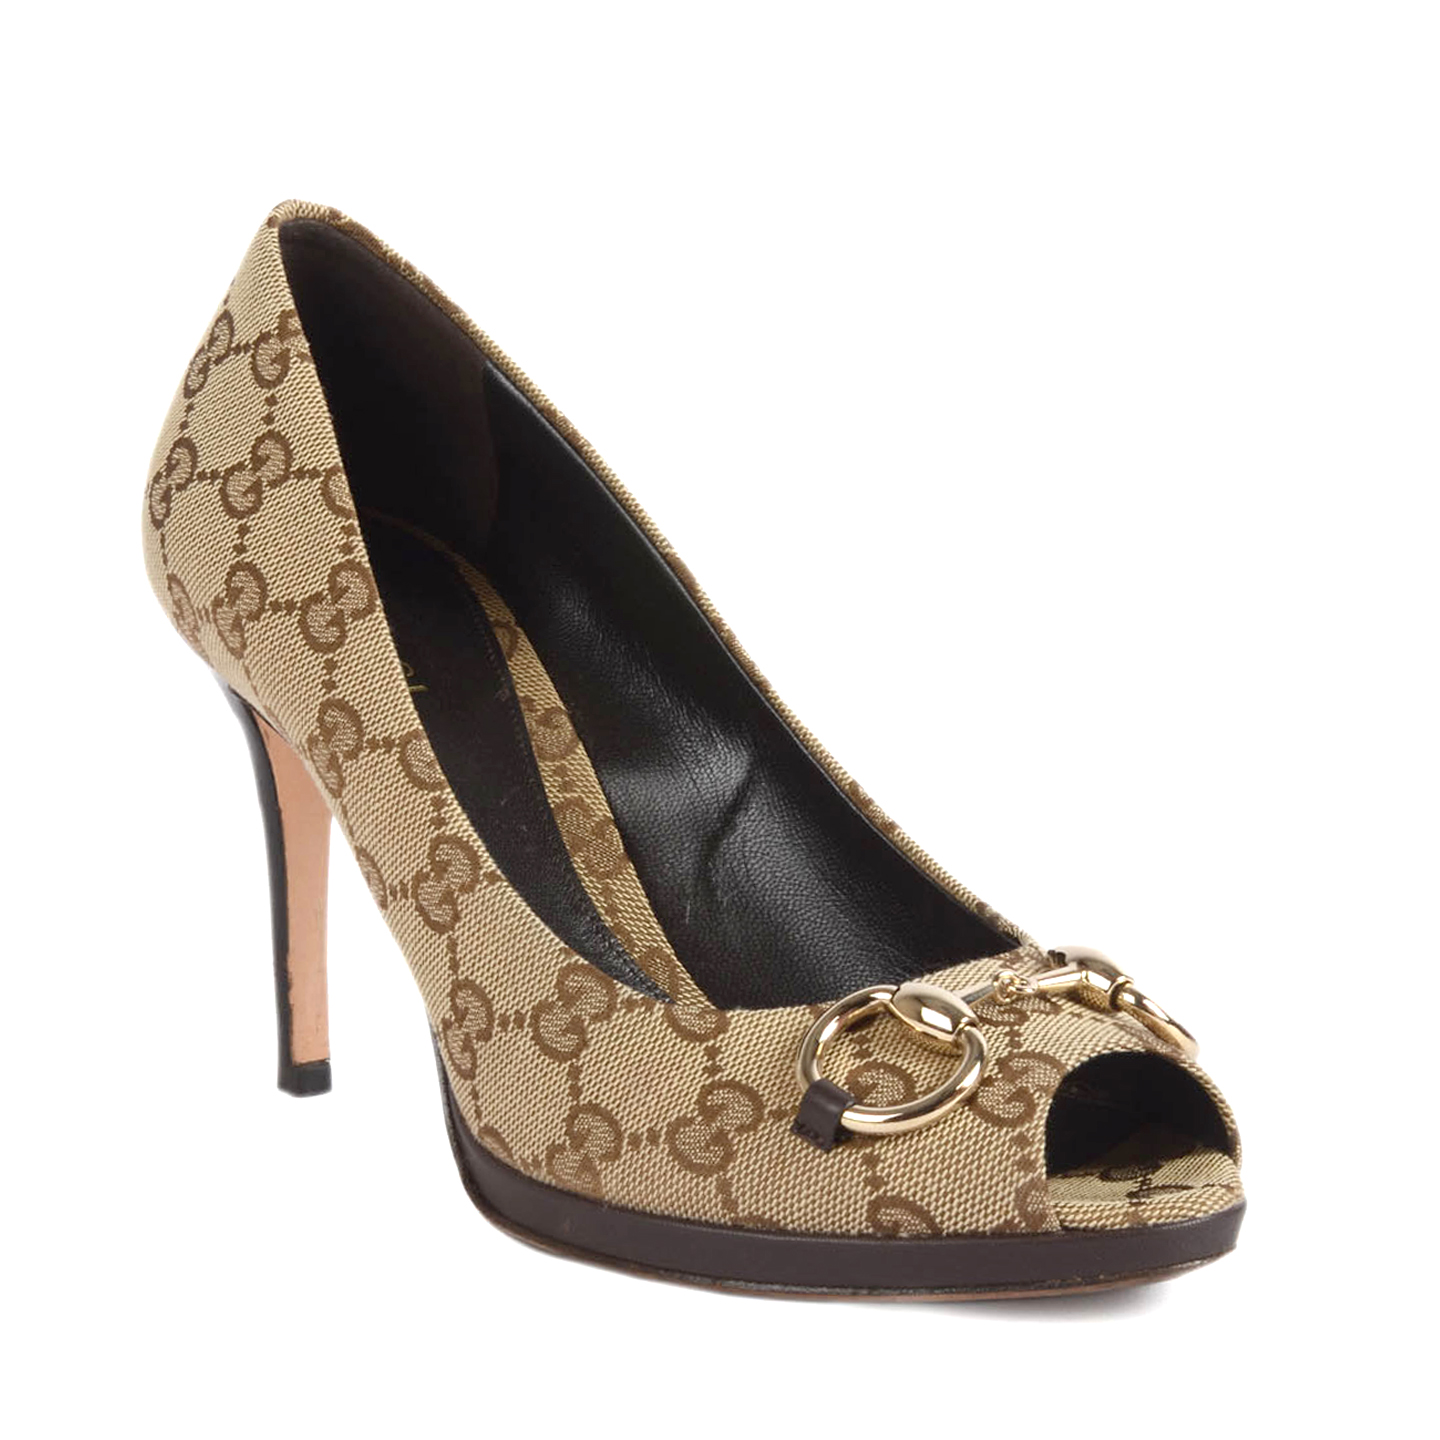 ac7f618a3 Gucci Beige/Ebony GG Canvas Horsebit Peep-Toe Pumps Size 37.5-1 ...